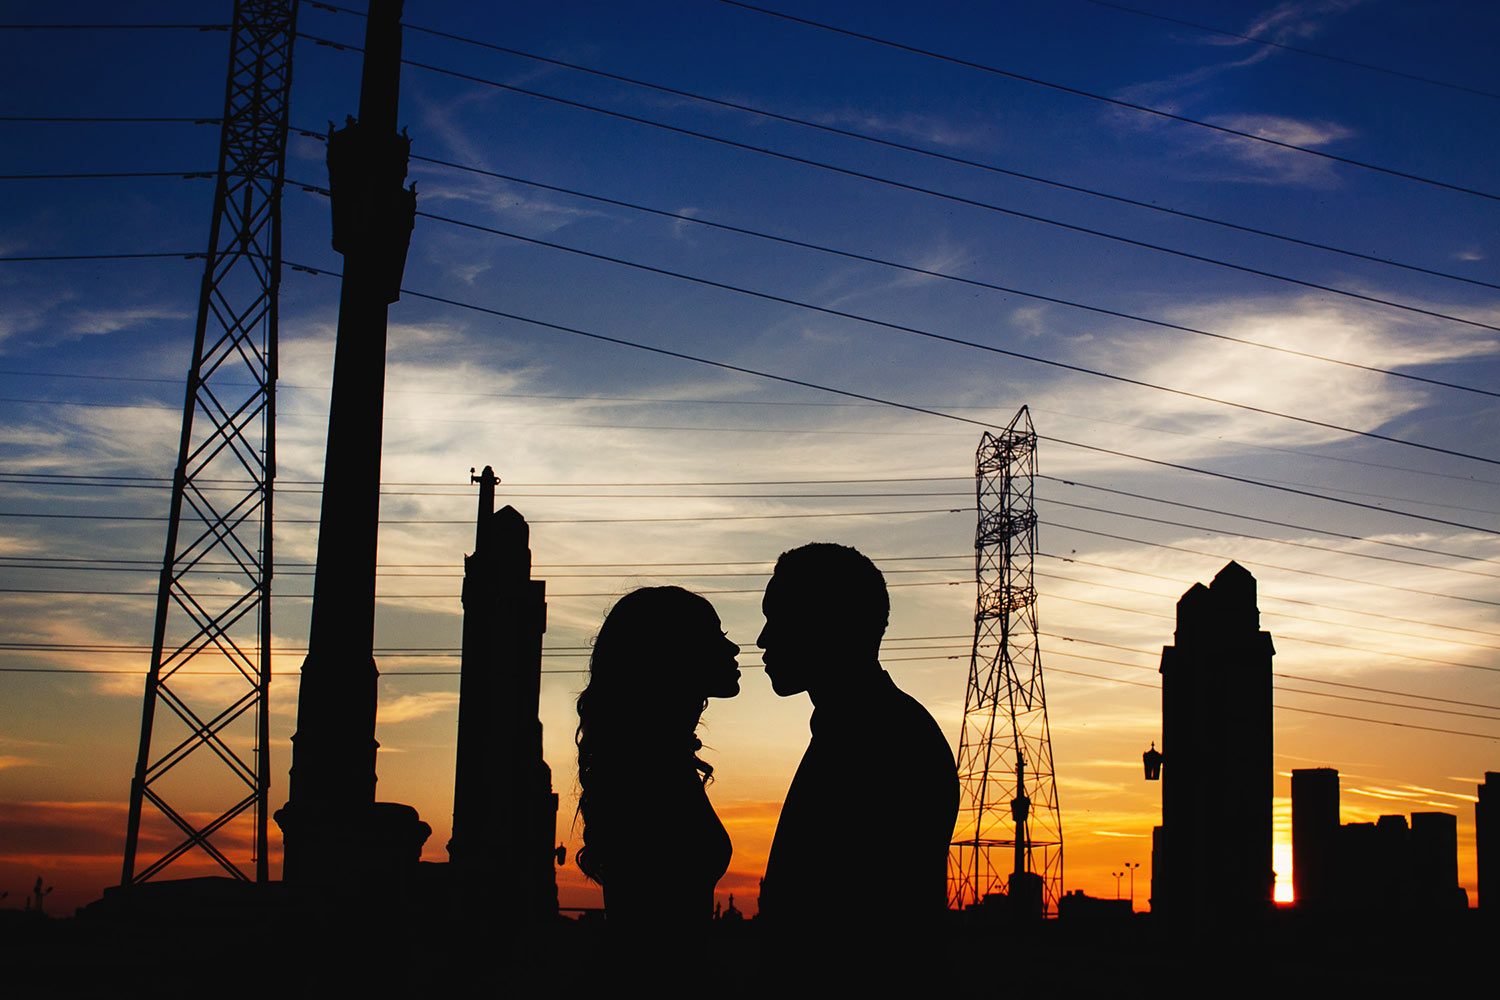 Amazing silhouette Los Angeles engagement session